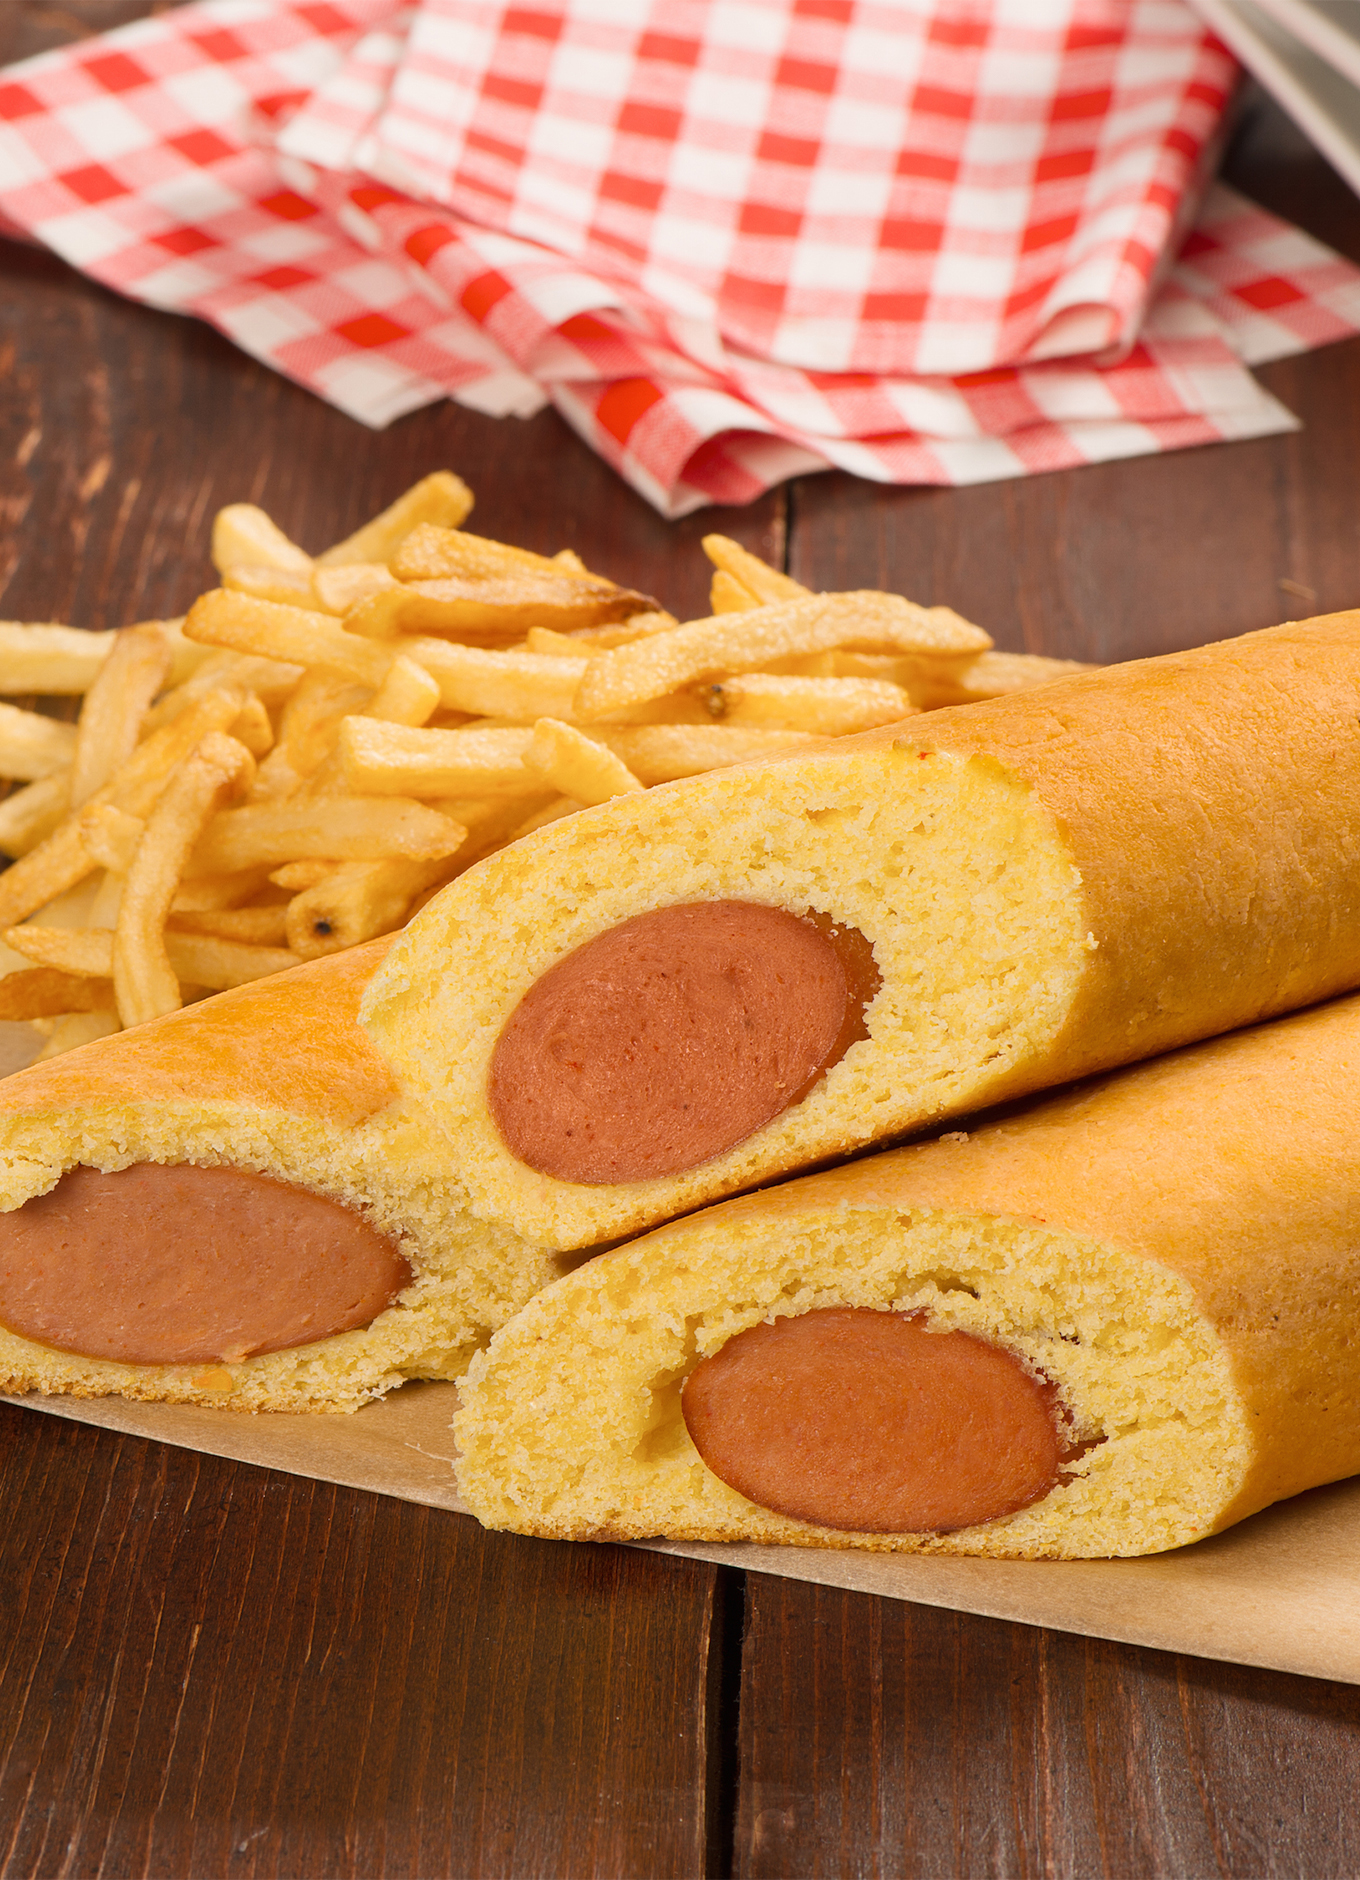 Three corn dogs on a sheet of parchment paper with a side of fries and ketchup for dipping